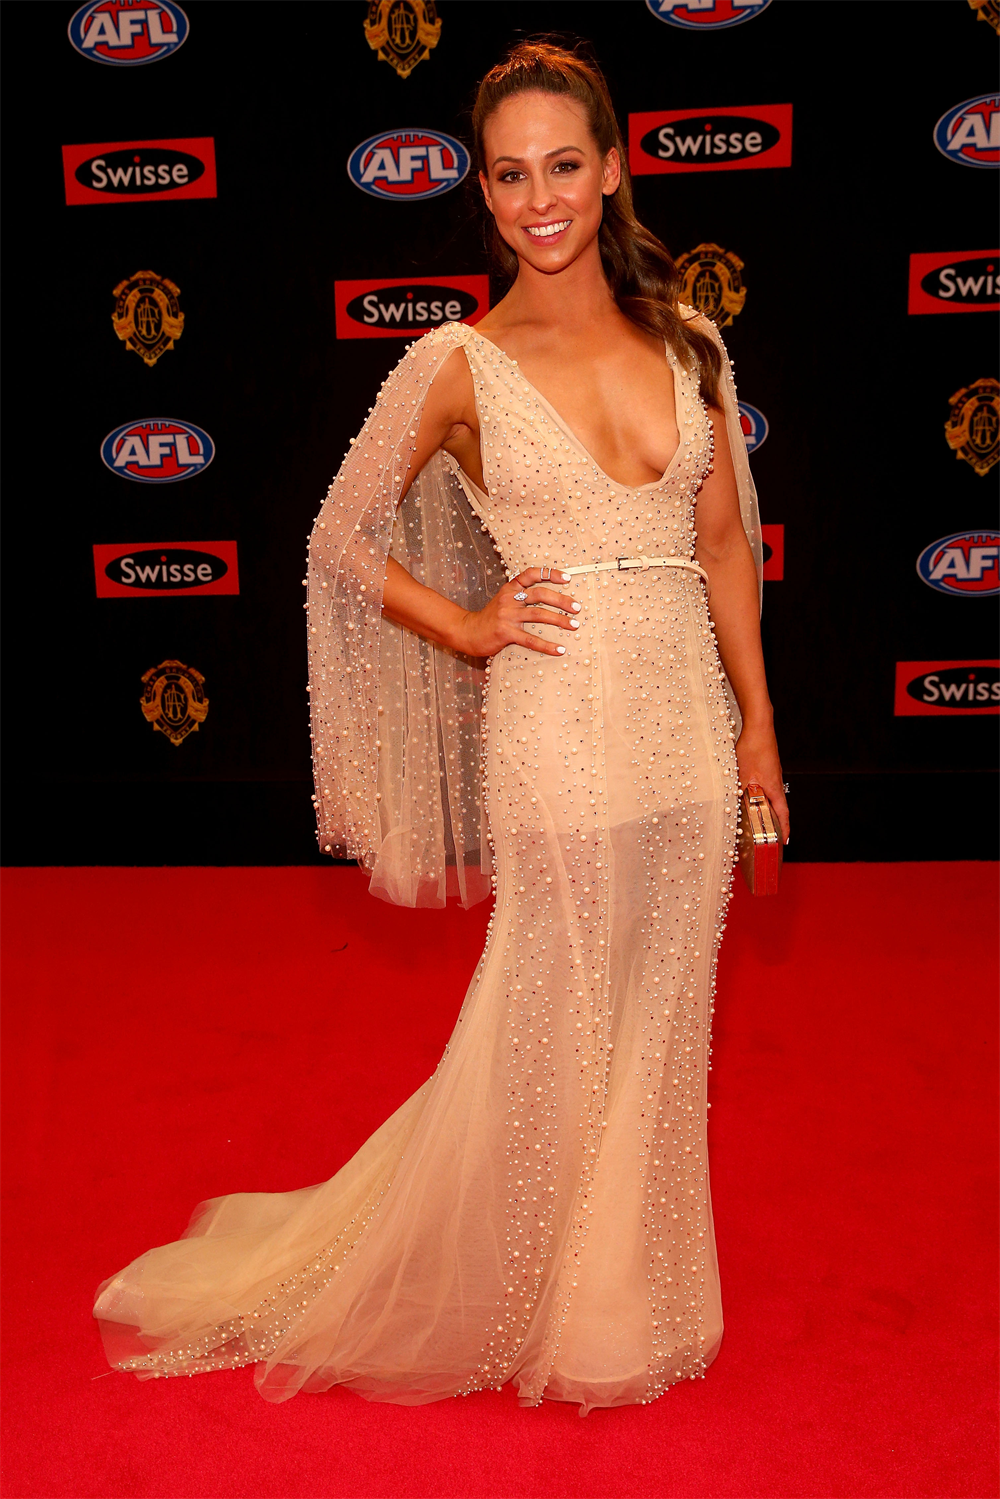 Best and Worst Dressed at the 2015 Brownlow Medal | [V] on Foxtel